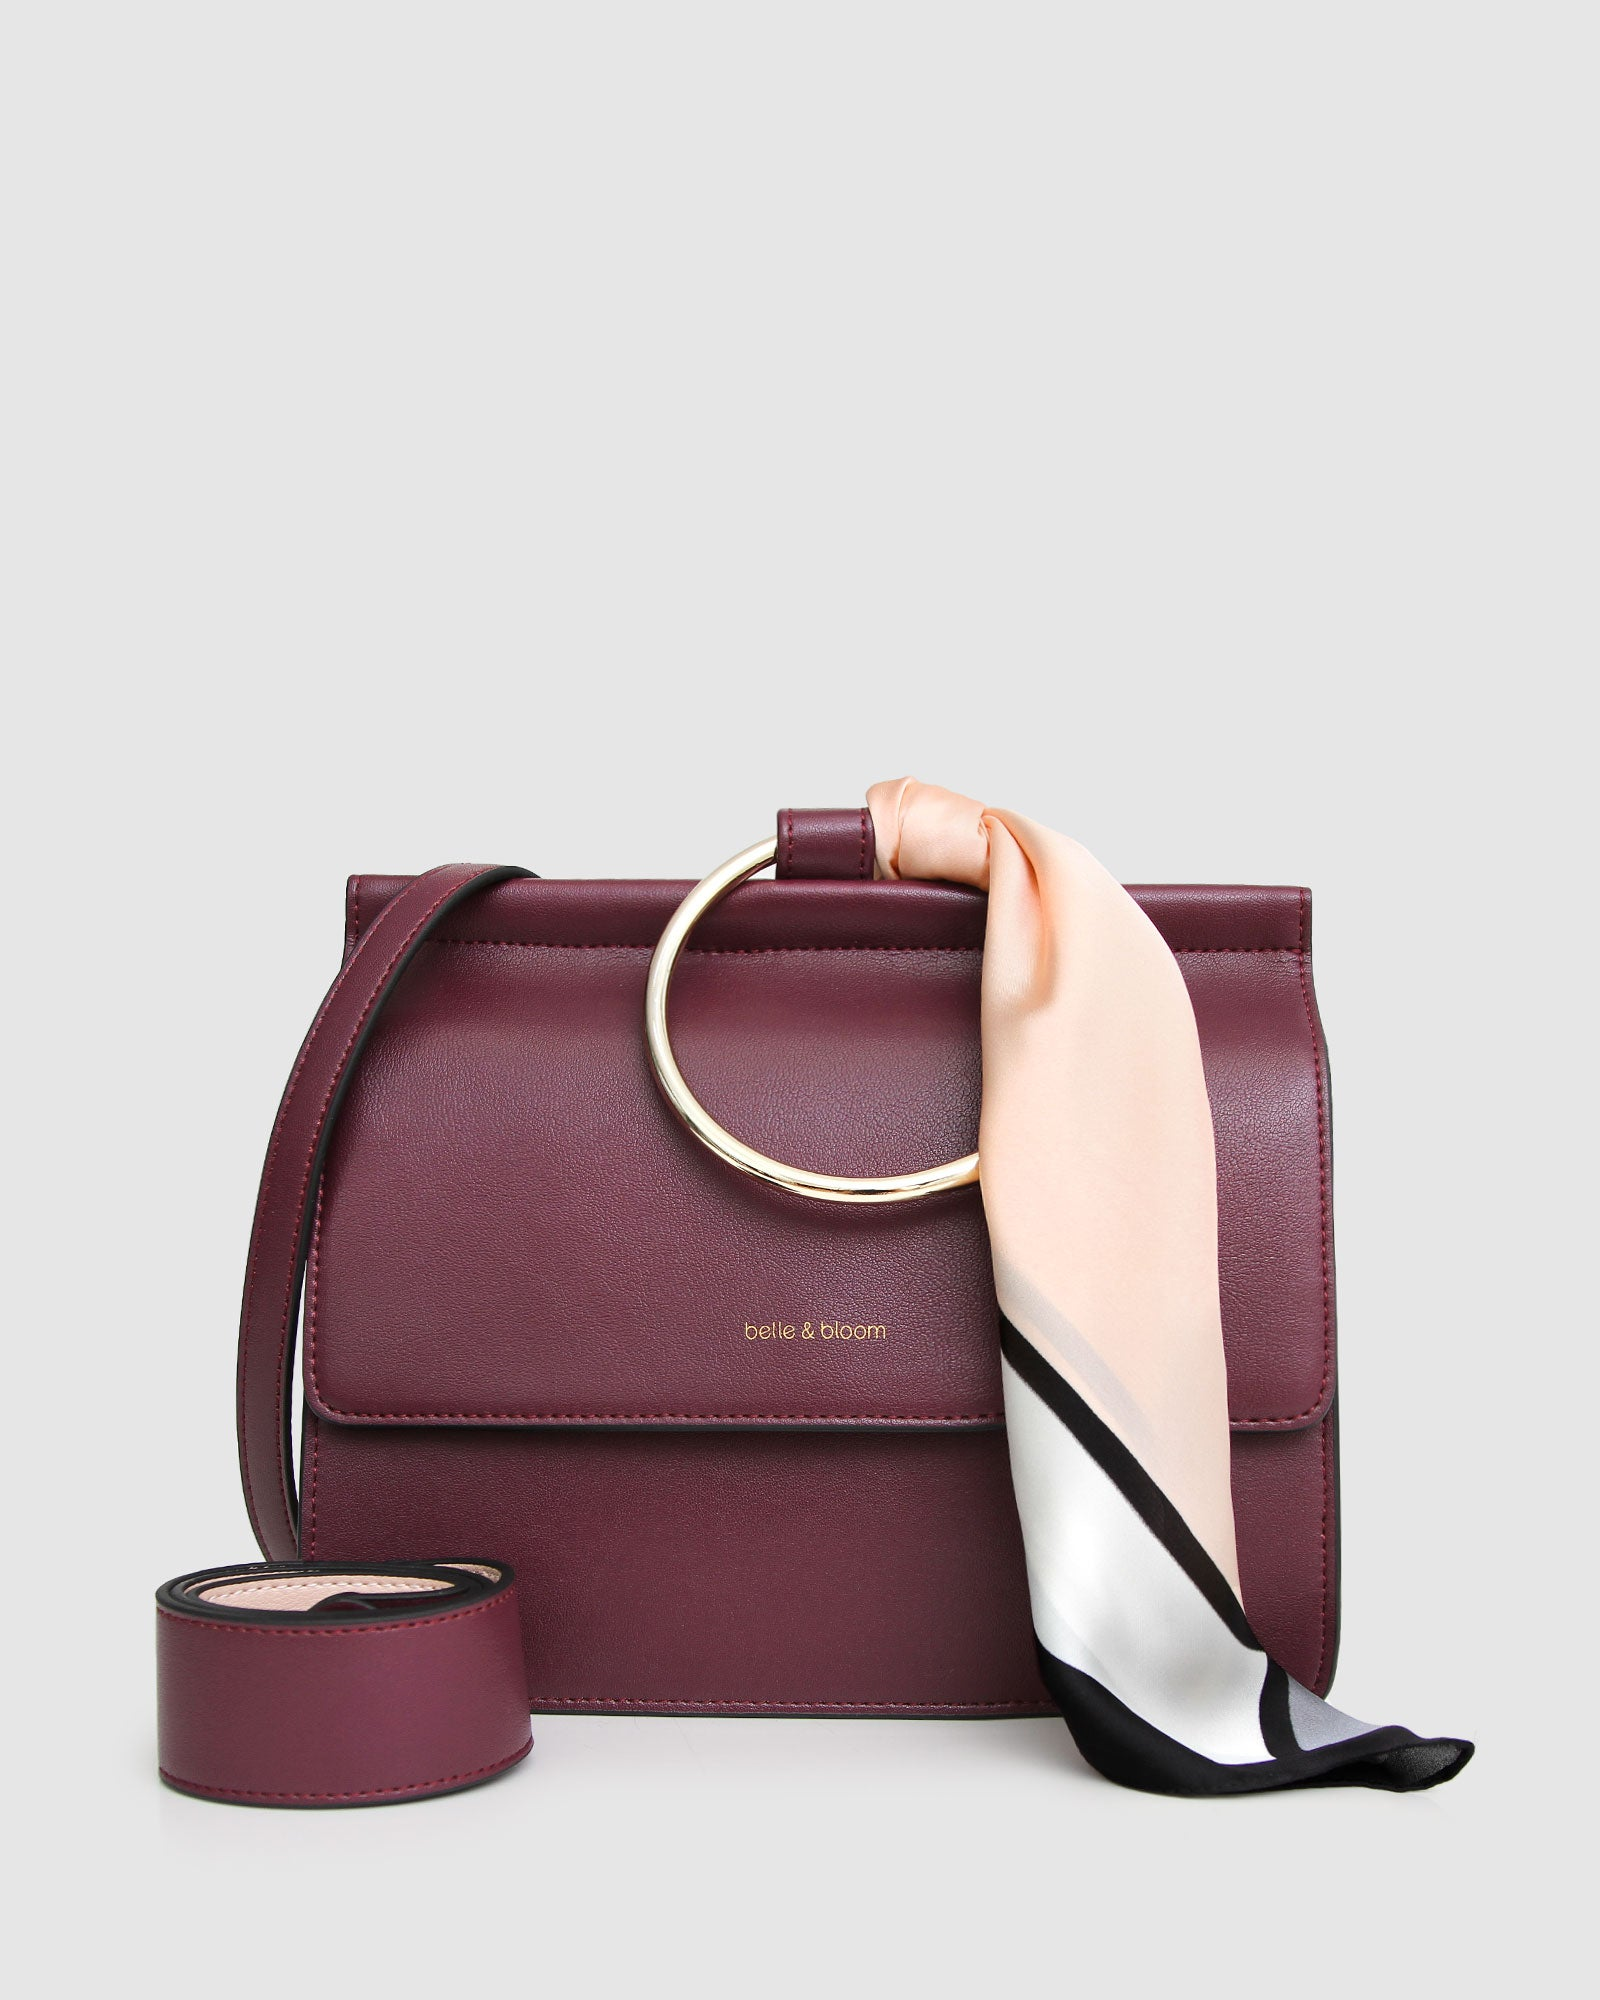 brianna_leather_bag_ring_scarf-straps-front.jpg